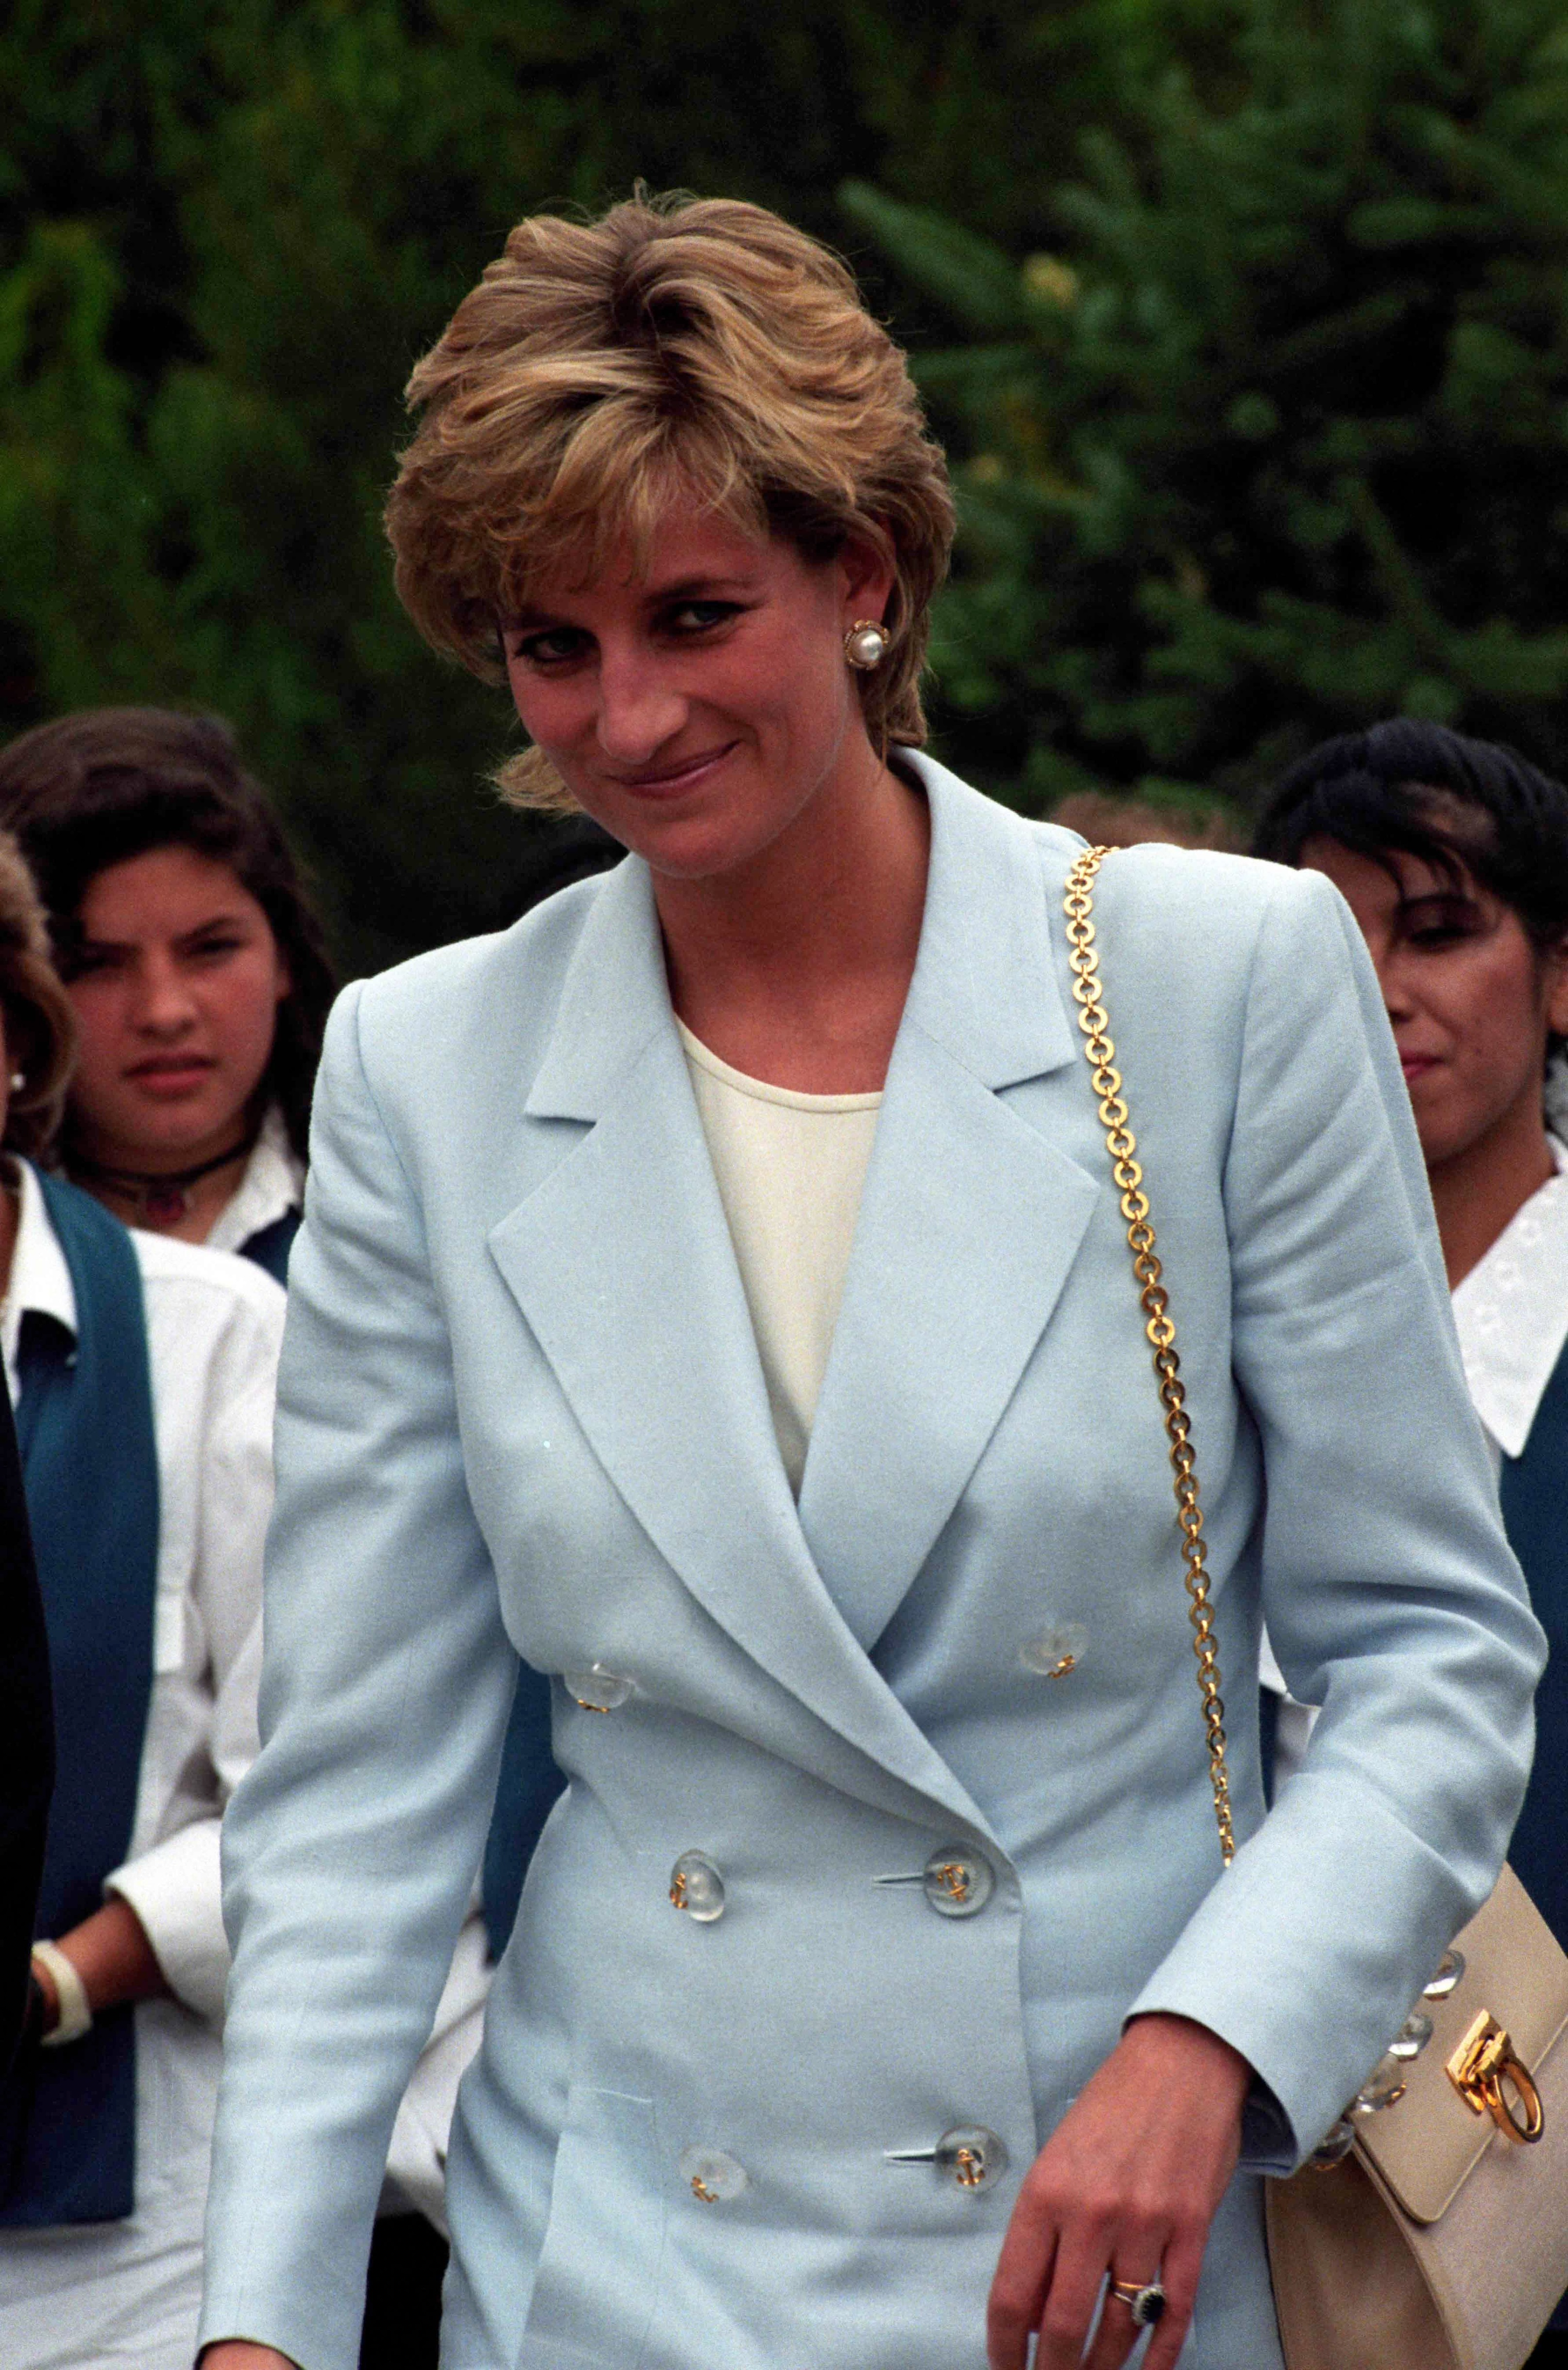 December 1995: Princess Diana visits a traditional tea house in the town of Patagonia during a visit to Argentina.. 16/11/2010: Kate Middleton (Catherine Middleton) Receives Princess Diana's engagement ring. Clarence House have today announced that Prince William and Kate Middleton are to get married next spring/summer 2011. Credit: Ken Goff/GoffPhotos.com     Ref: KGC-22  Clarence House have today announced that Prince William and Kate Middleton are to get married next spring/summer 2011., Image: 87519881, License: Rights-managed, Restrictions: , Model Release: no, Credit line: Profimedia, Goff Photos